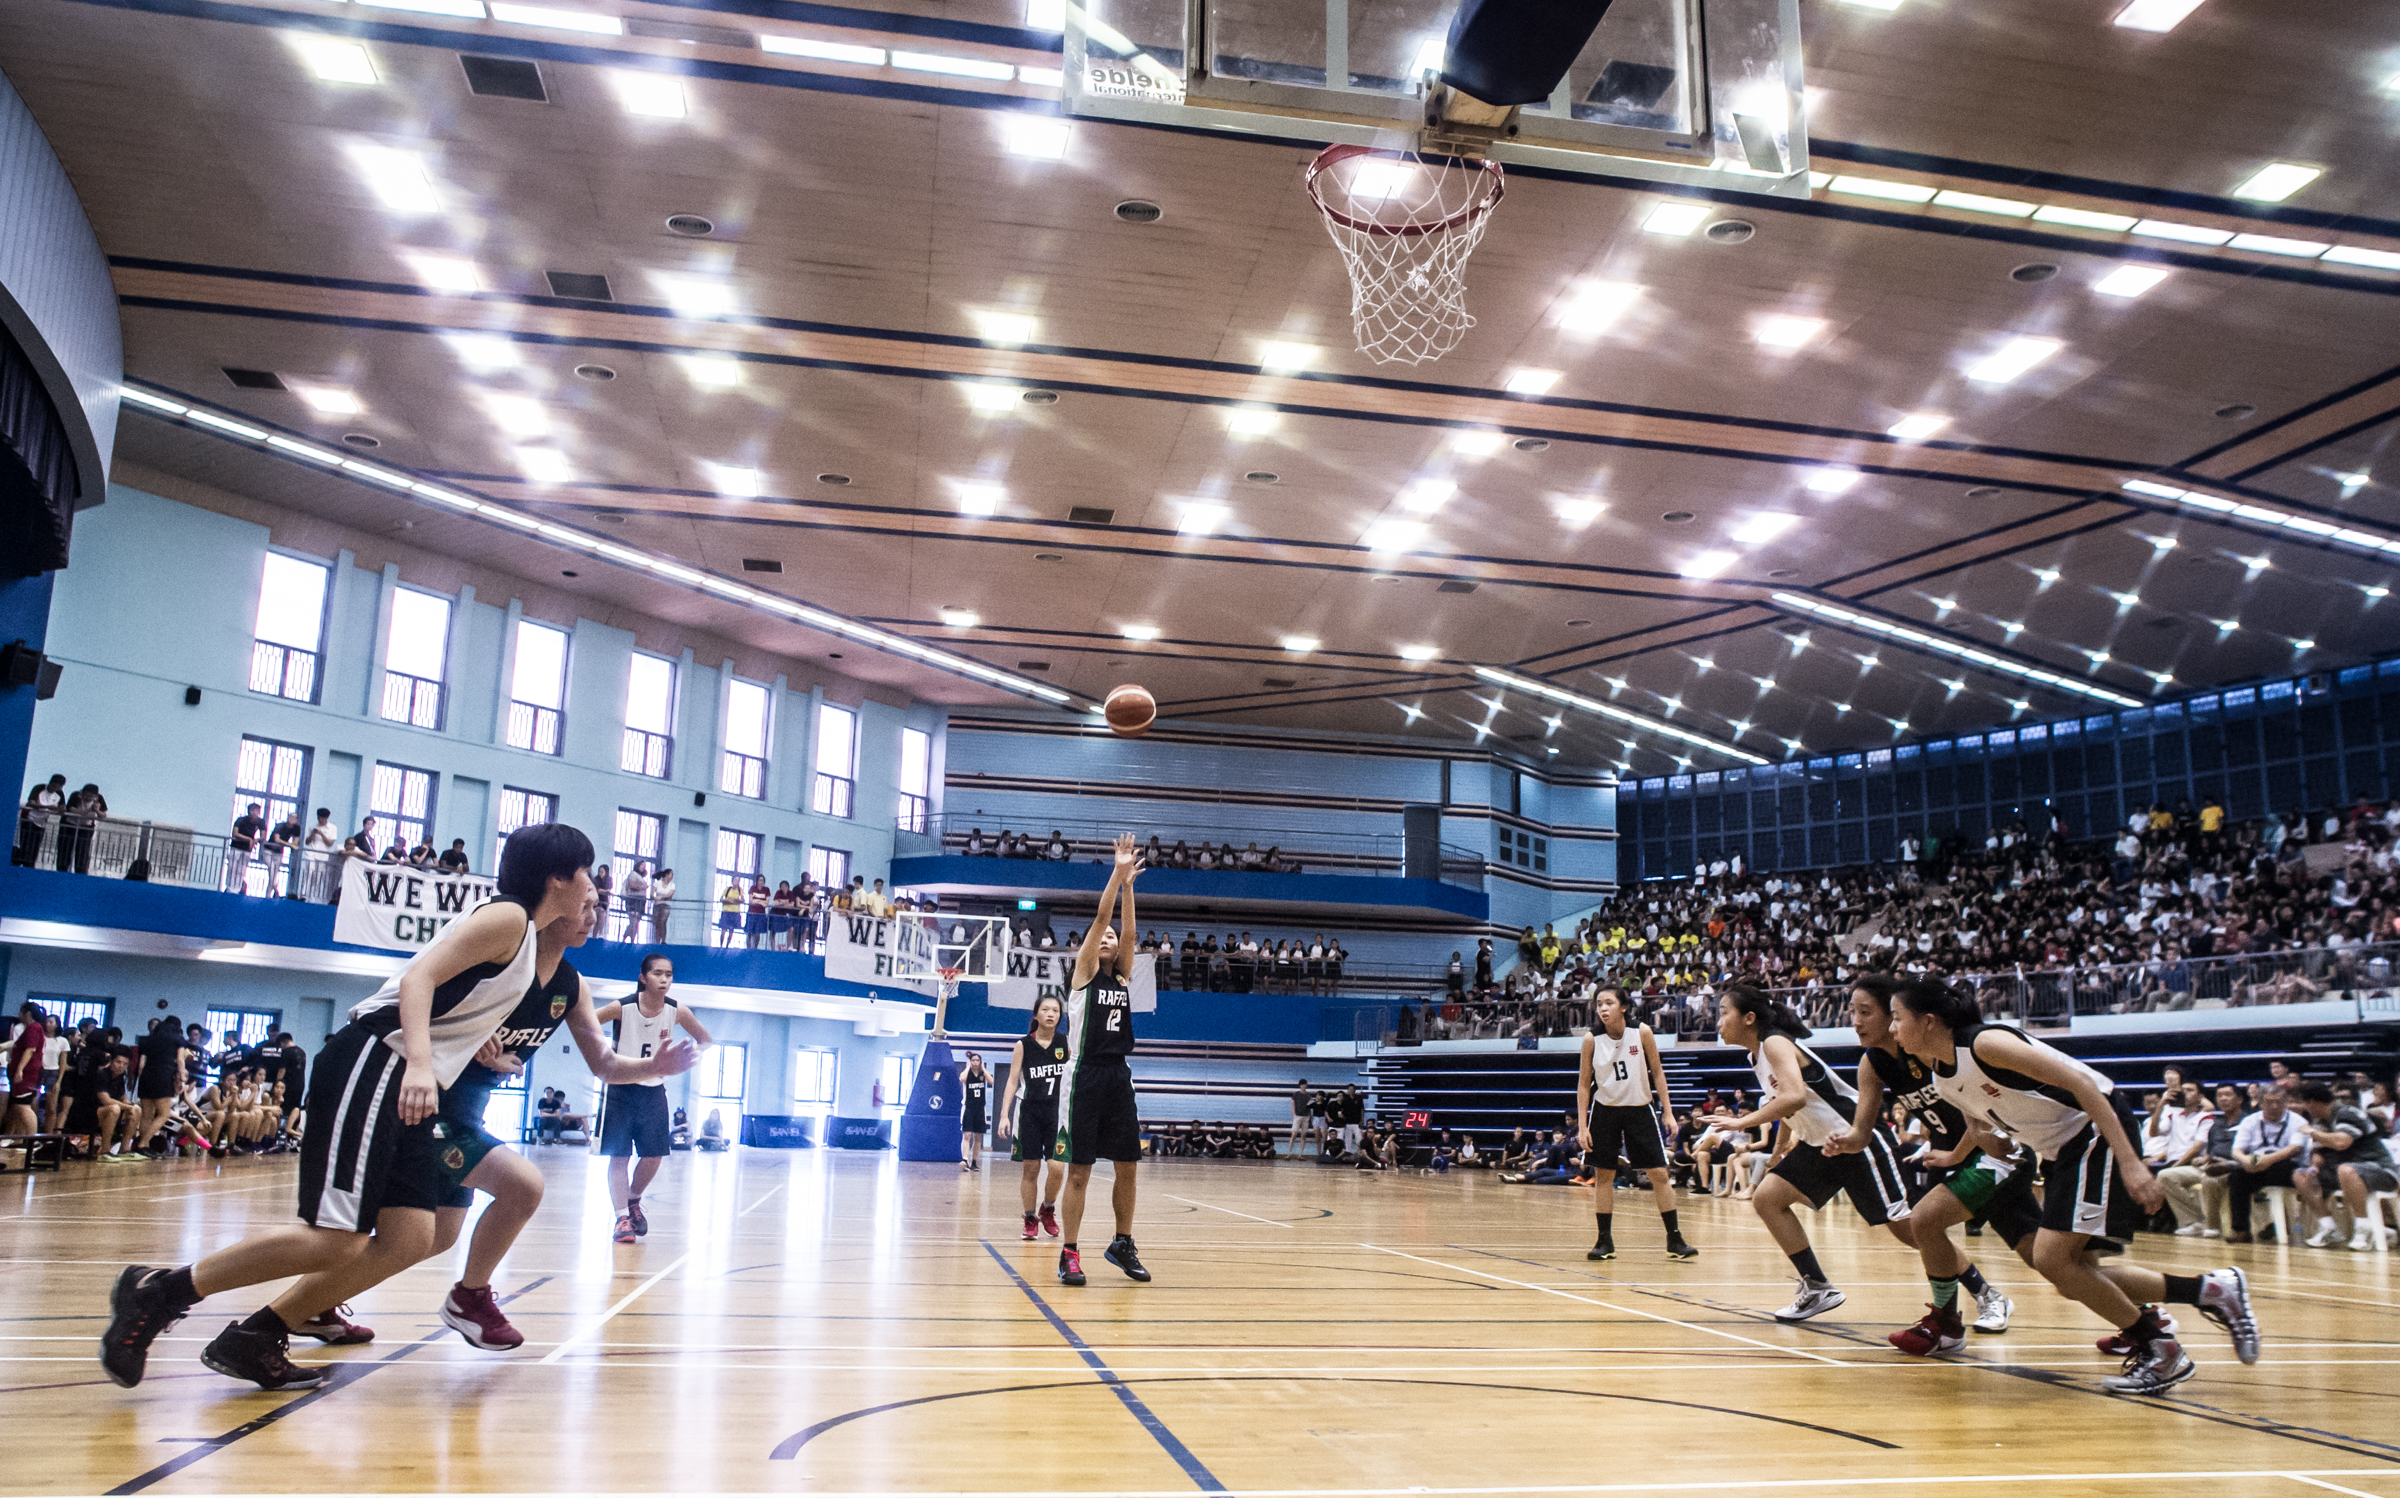 Basketball players rush forward during a free throw at a National Schools match at the Jurong East Sports Complex.